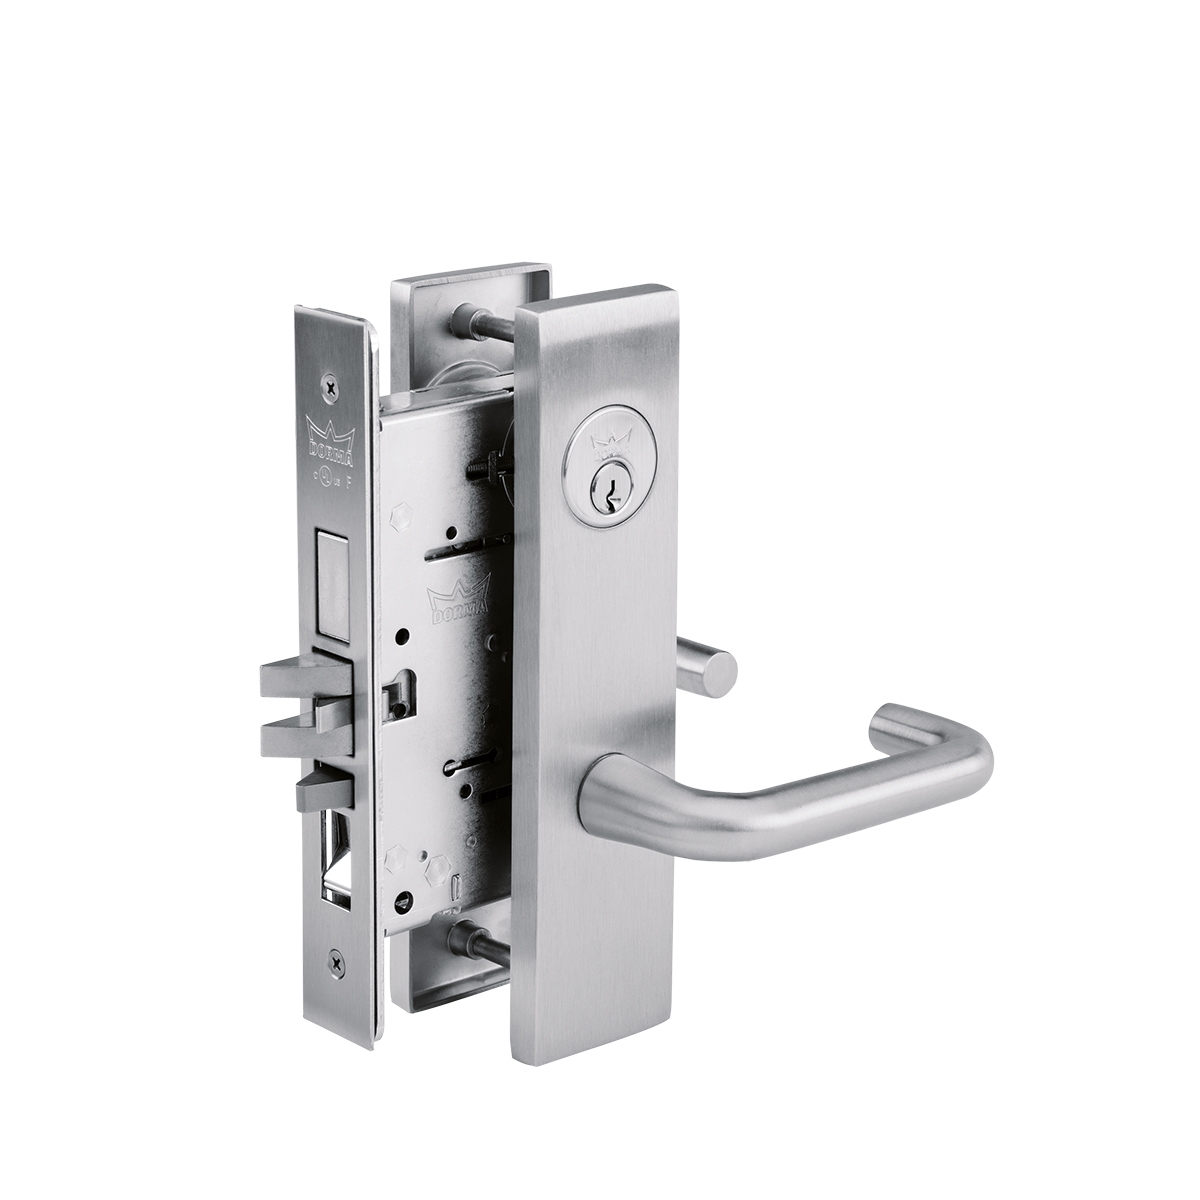 Dorma M9000 Series Mortise Locks Security Amp Dependability